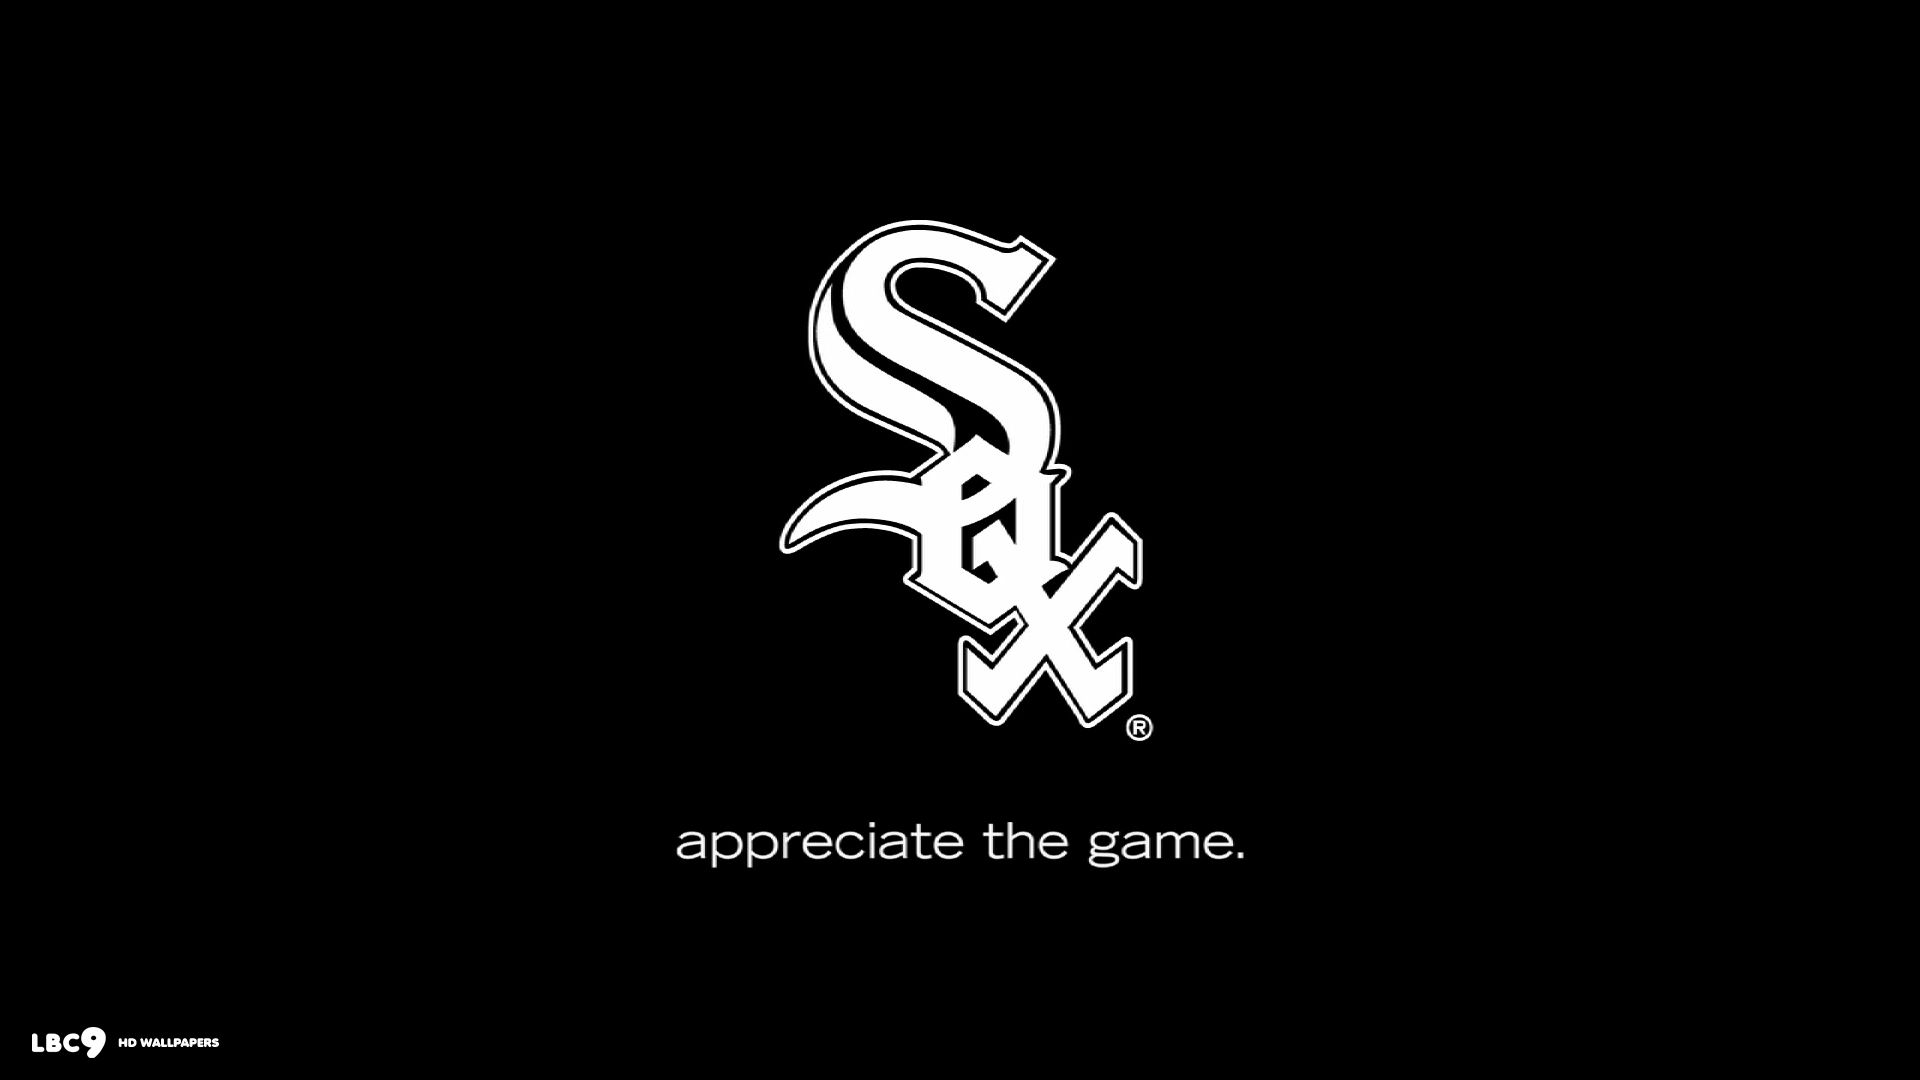 chicago white sox logo wallpaper wallpapersafari